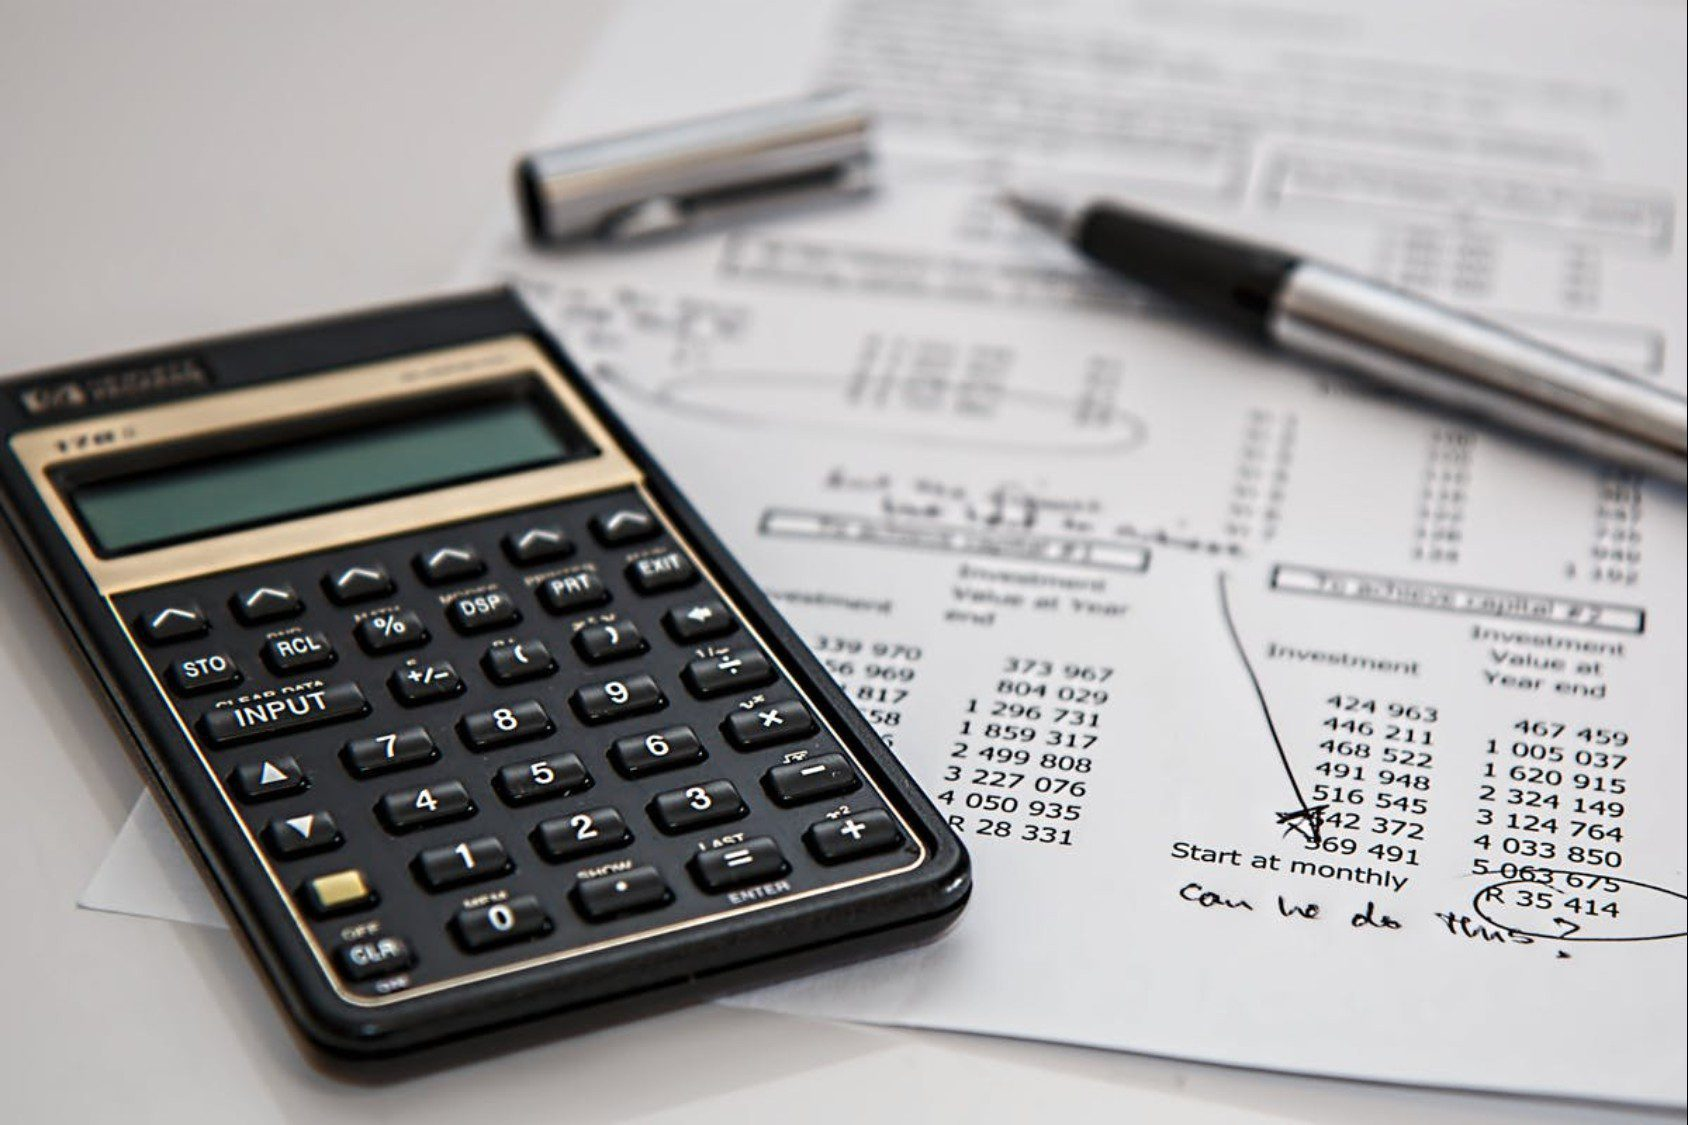 HR and Finance using a calculator to work out the company's finance